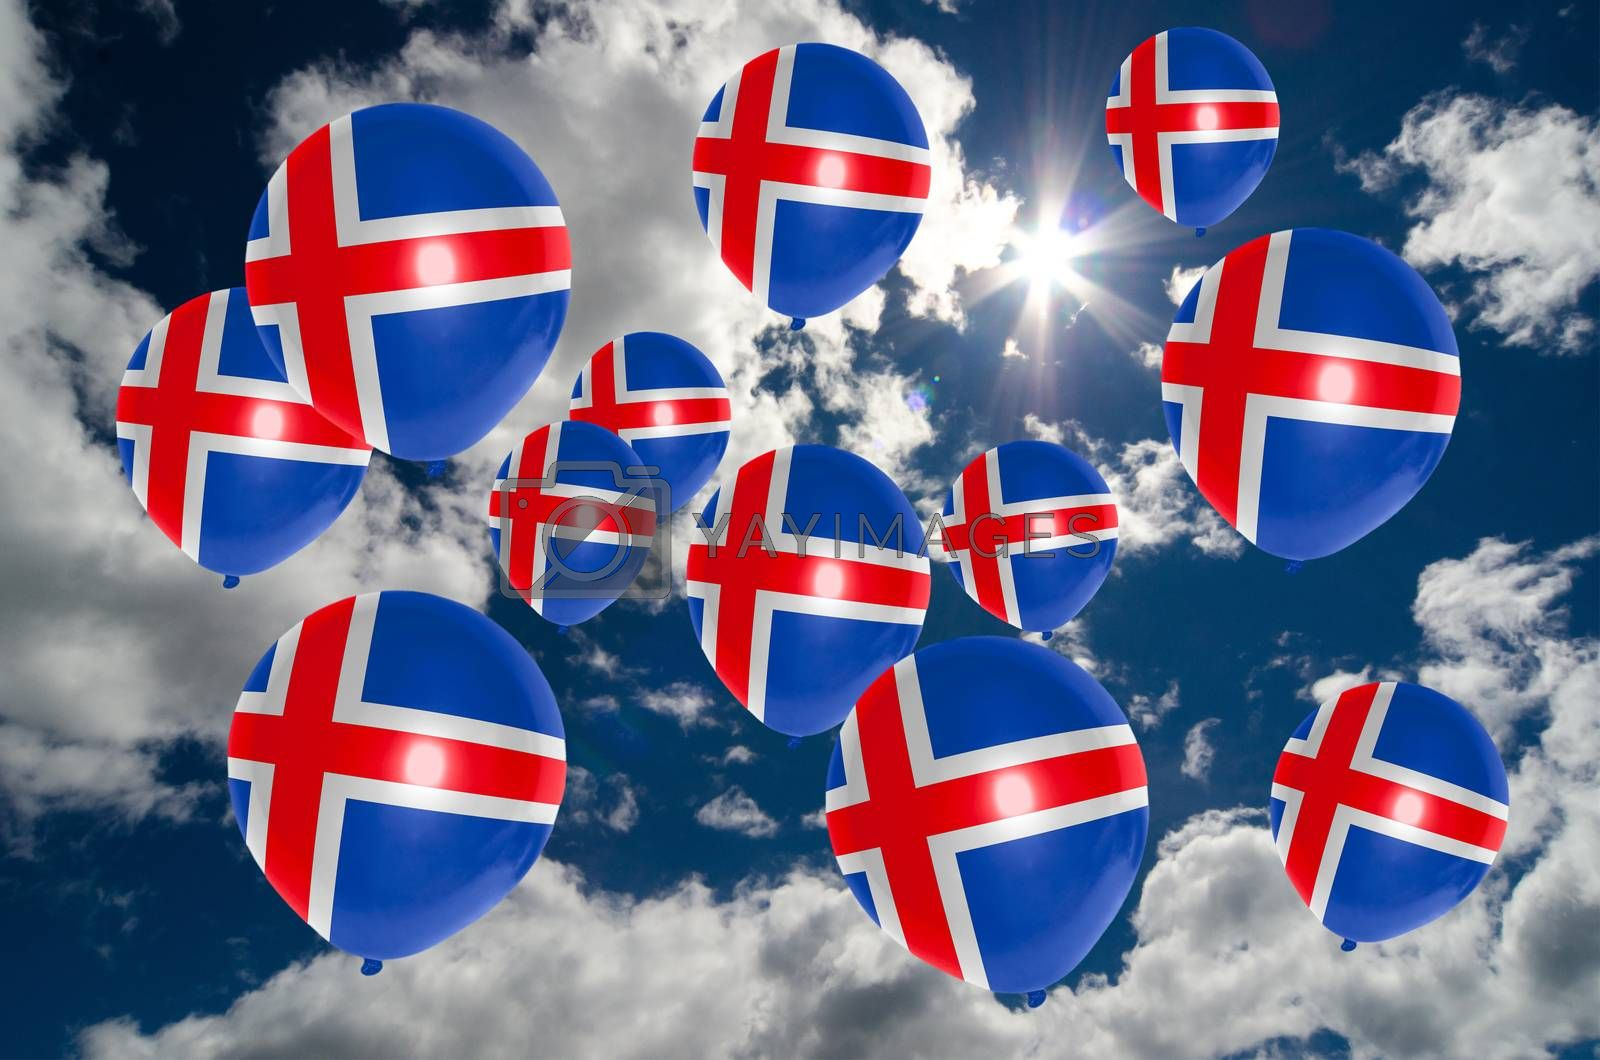 many ballons in colors of iceland flag flying on sky